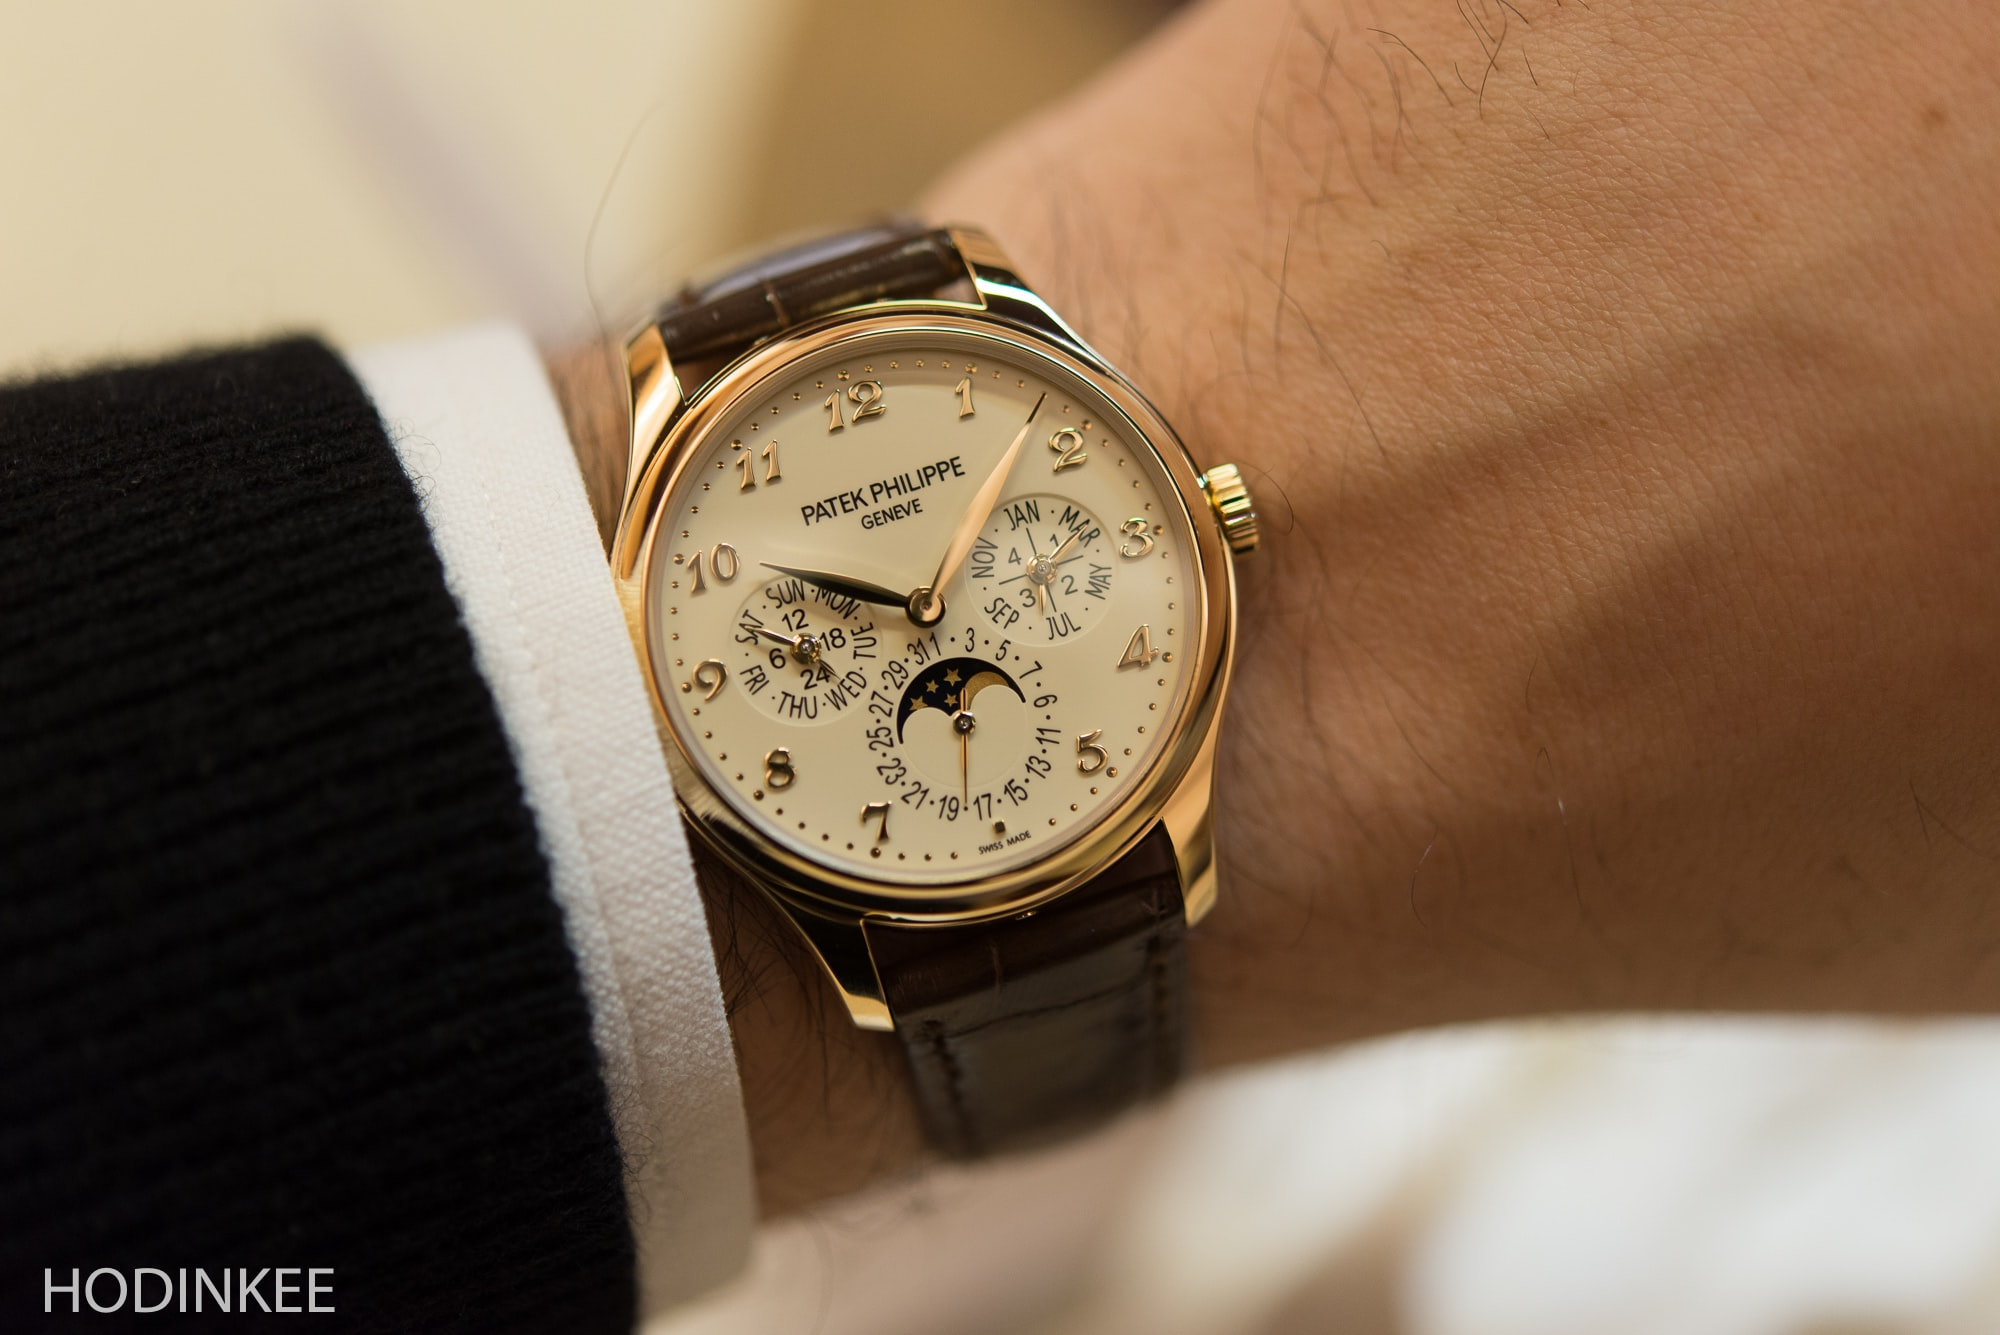 Patek 5327J Introducing: The Patek Philippe 5327, A Brand New Perpetual Calendar Model In A New 39mm Case (Live Pics) Introducing: The Patek Philippe 5327, A Brand New Perpetual Calendar Model In A New 39mm Case (Live Pics) Patek5327 1